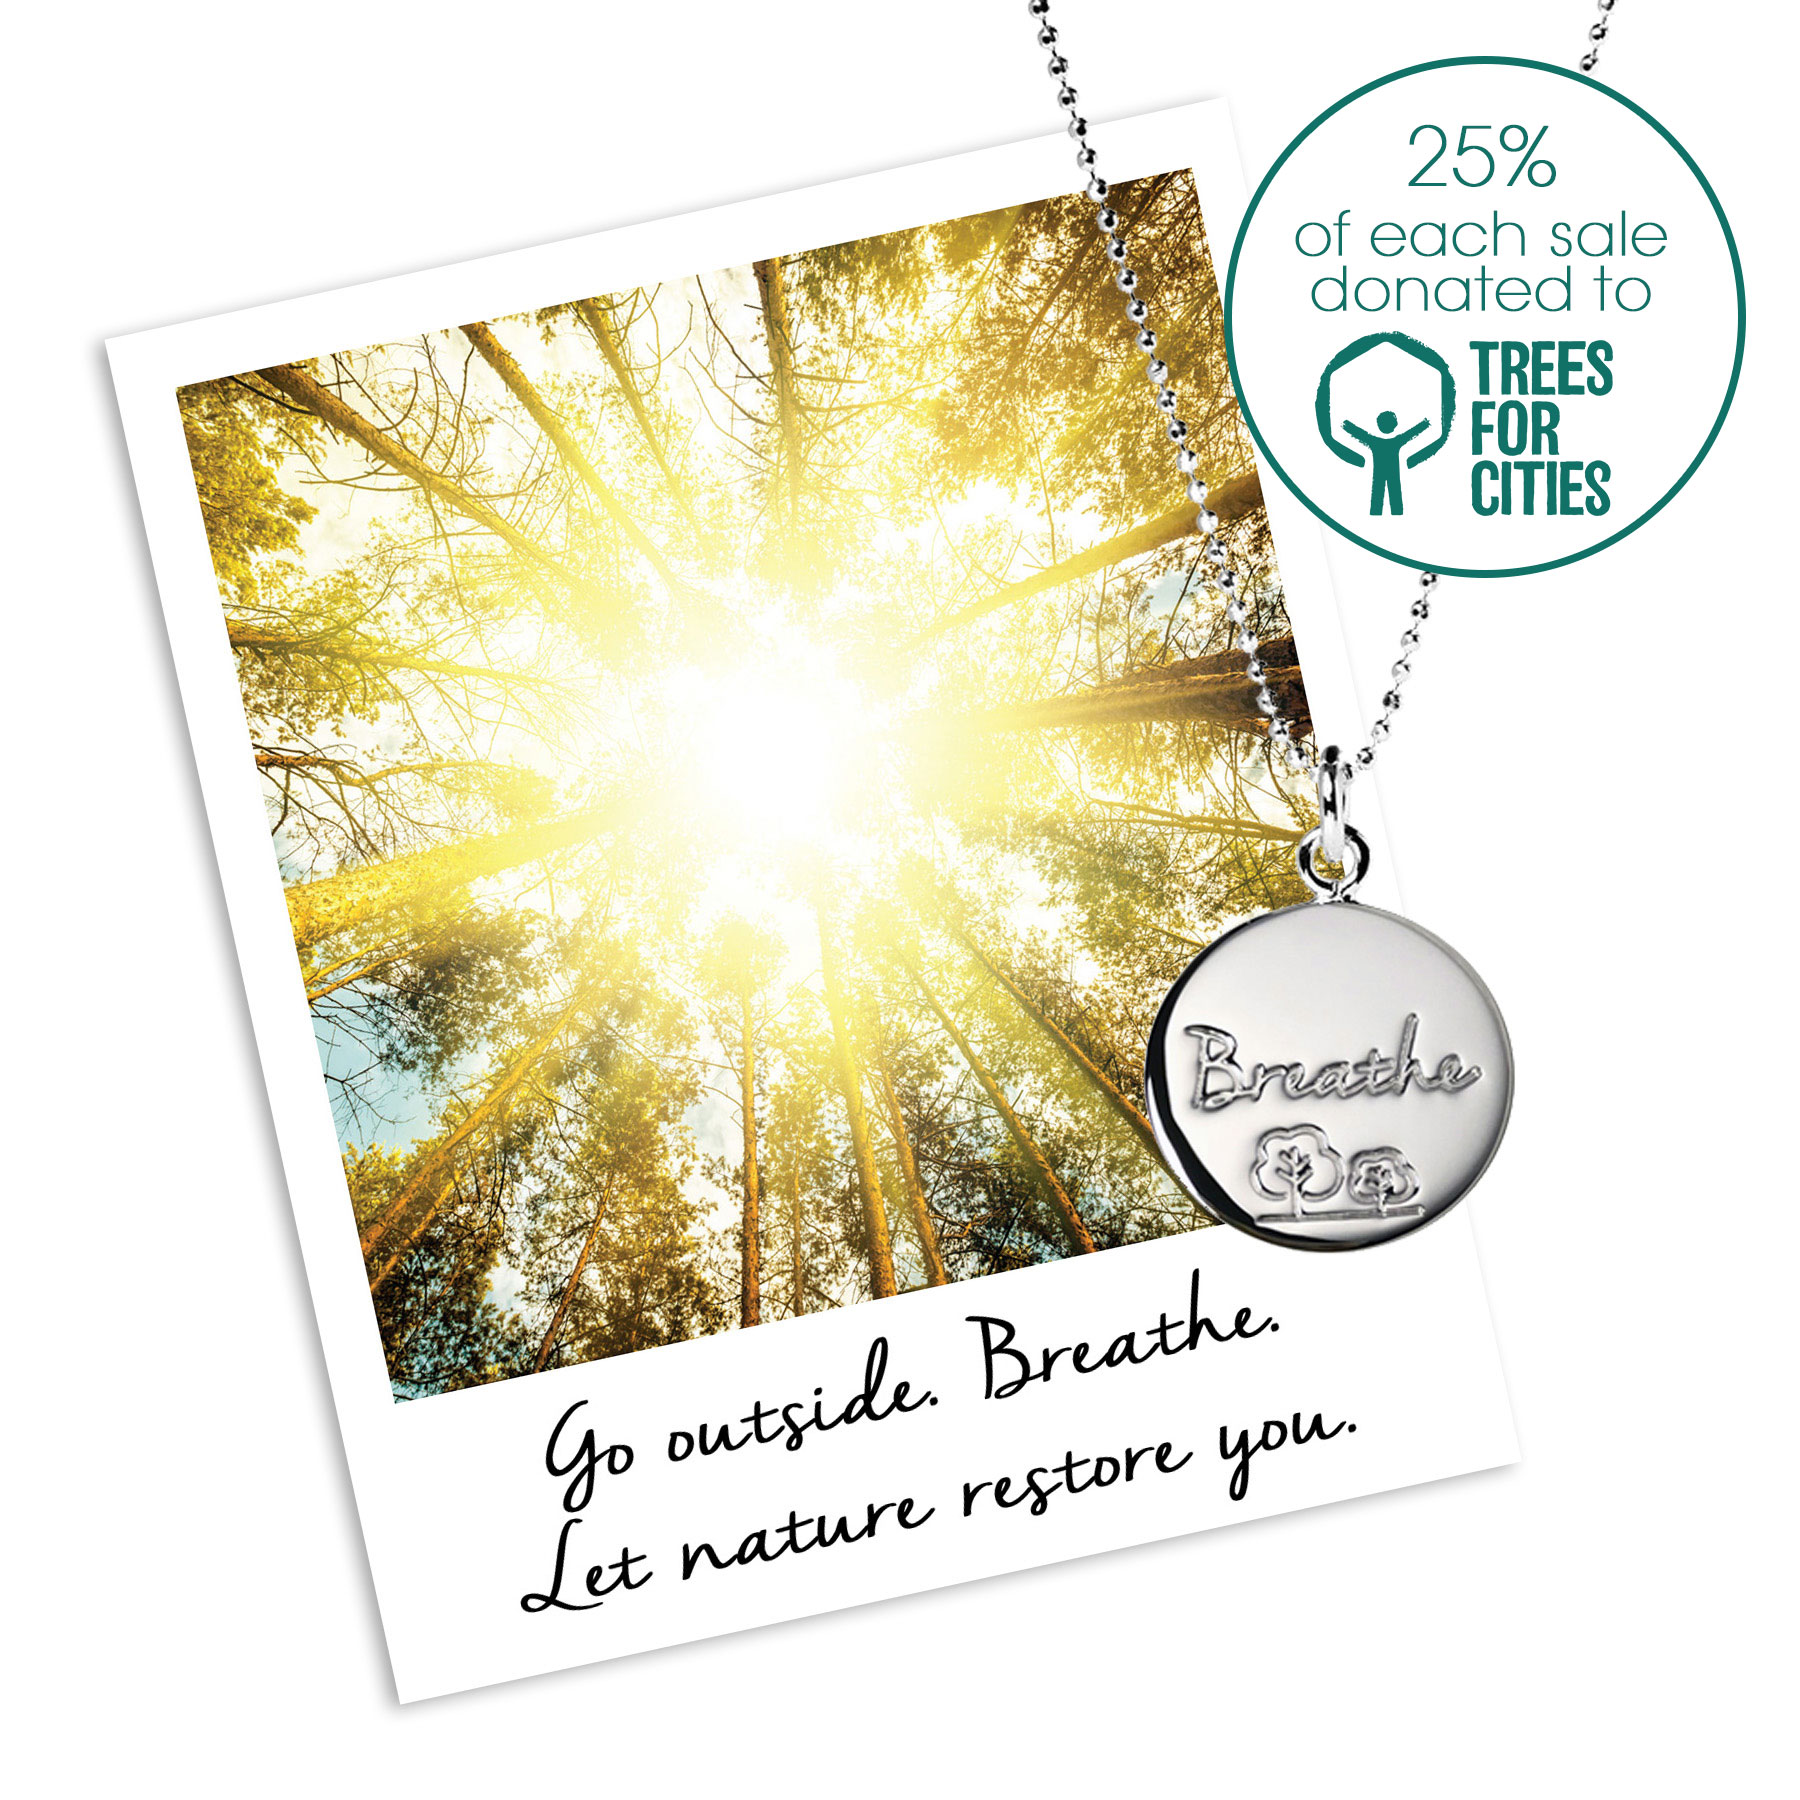 Trees for cities charity necklace - Mantra